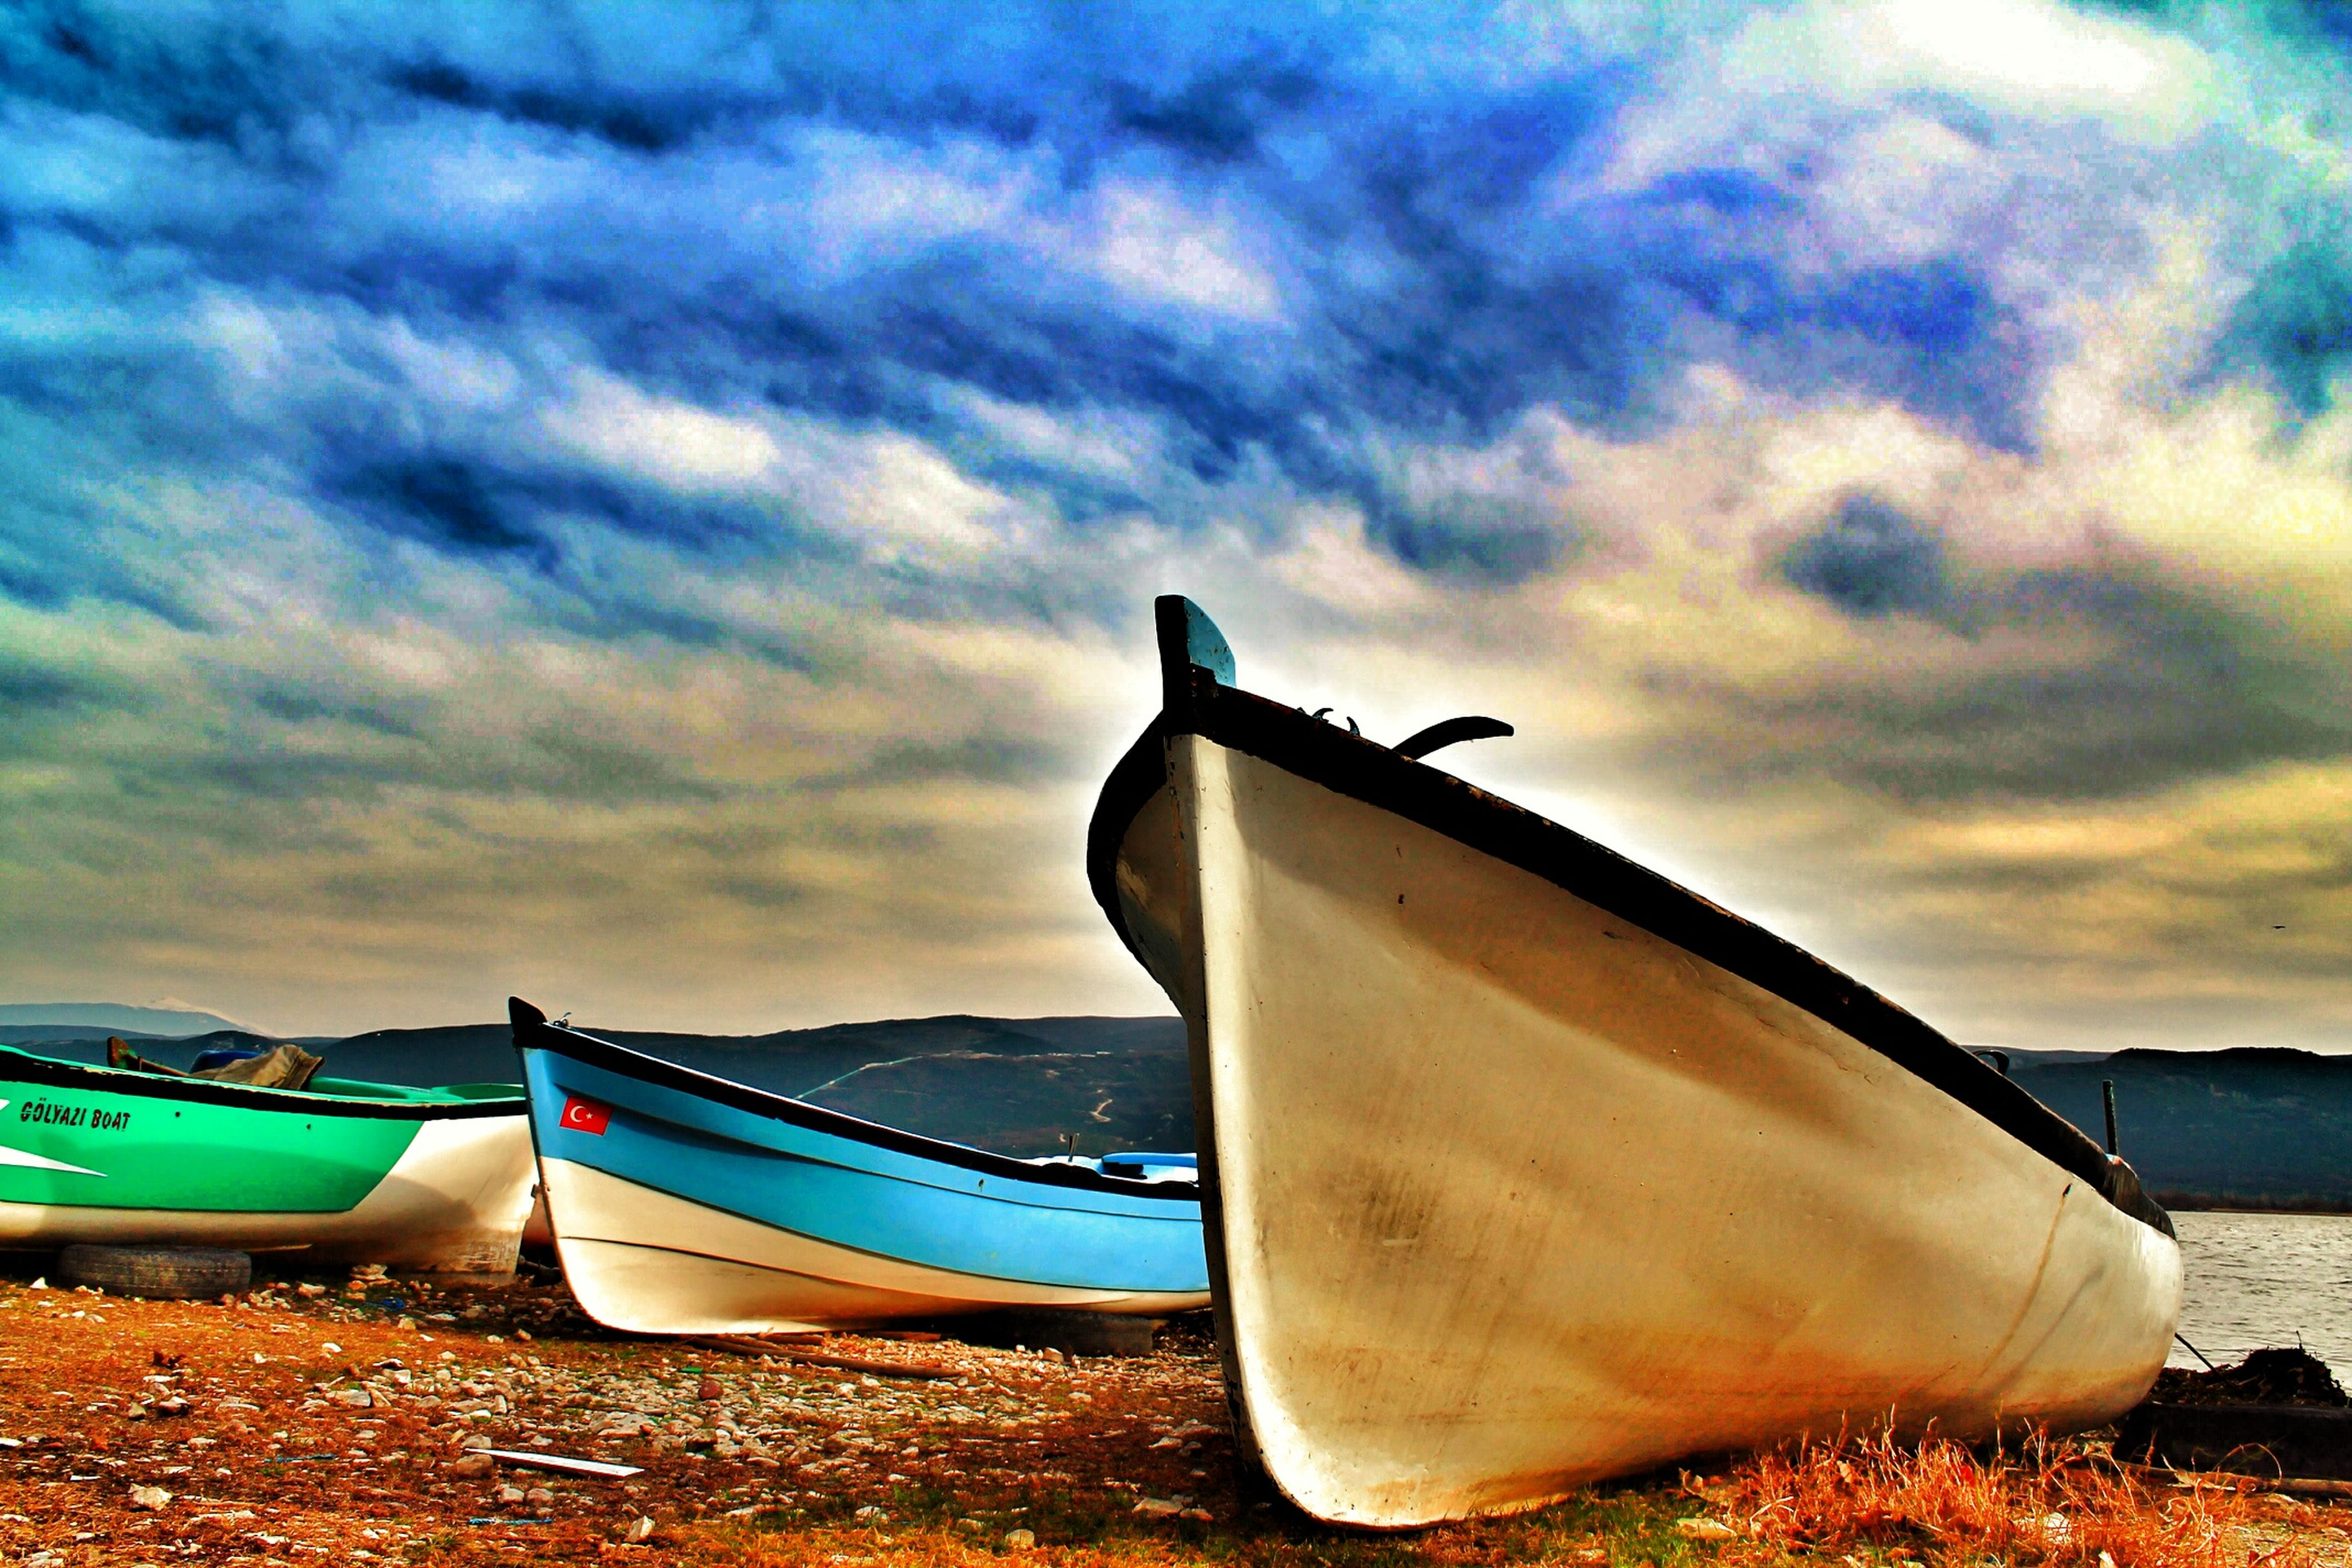 transportation, nautical vessel, mode of transport, sky, boat, moored, cloud - sky, water, cloudy, cloud, sea, beach, sand, shore, tranquility, nature, tranquil scene, travel, beauty in nature, scenics